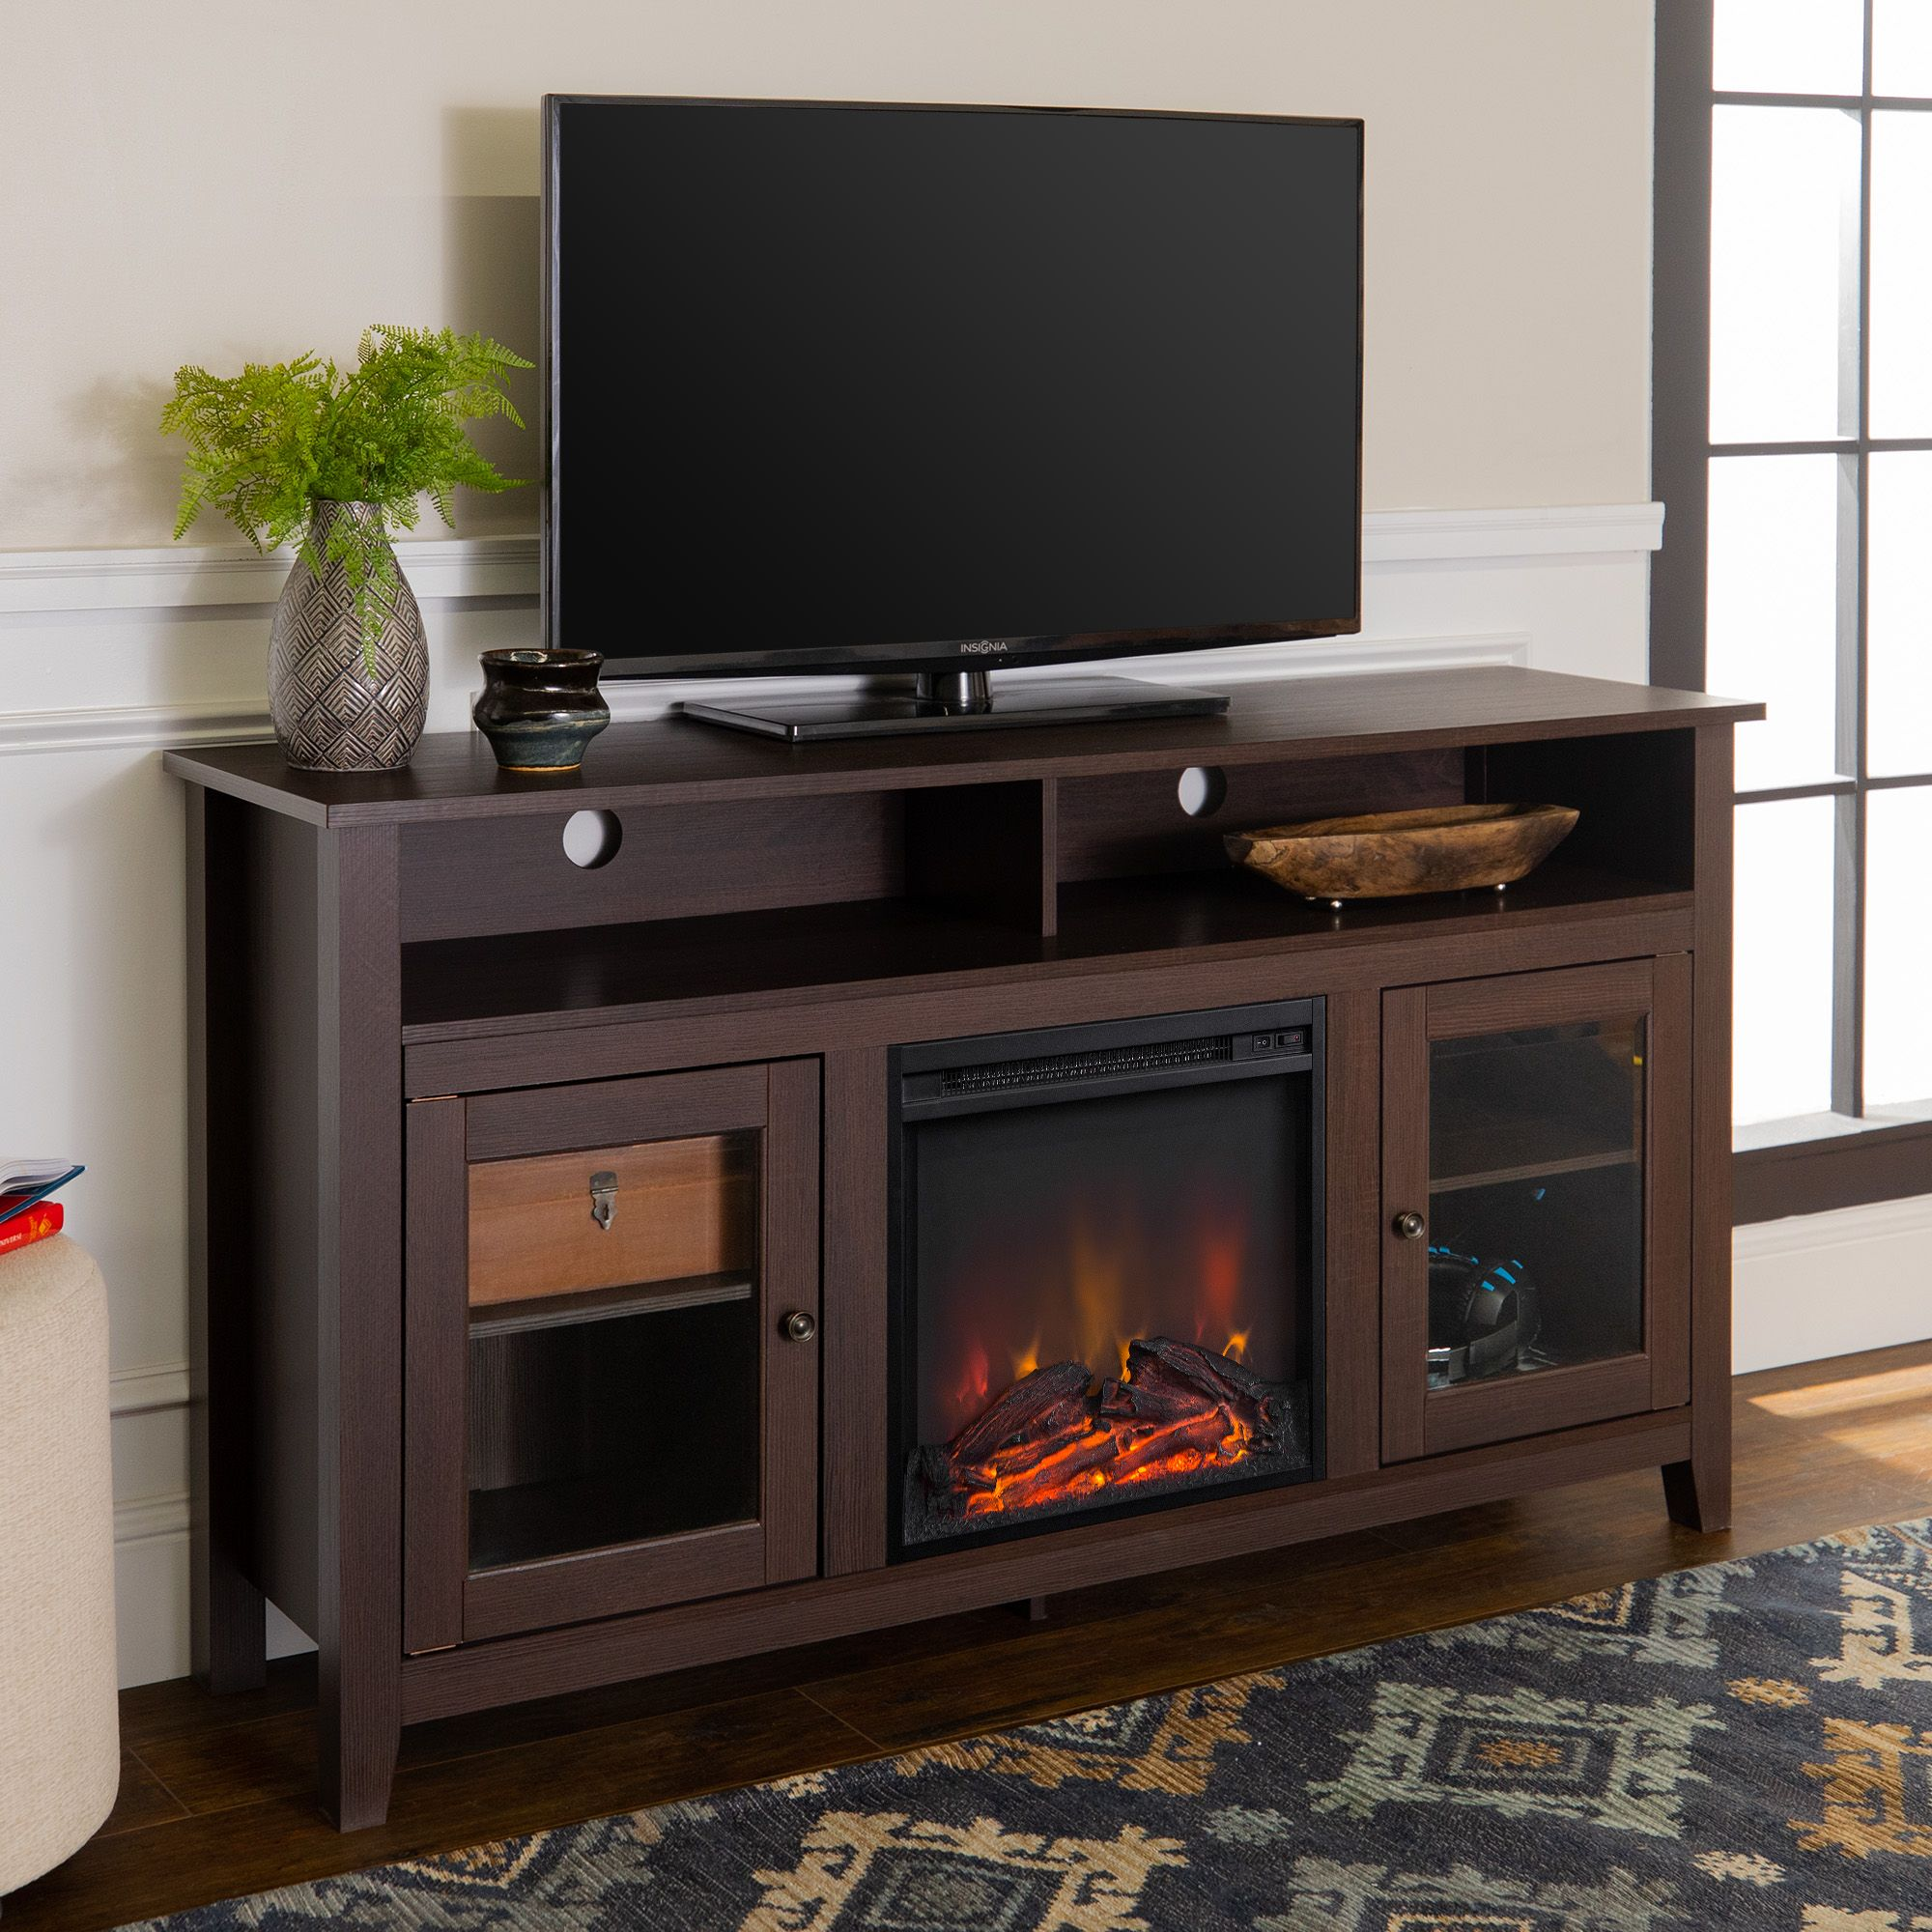 Walker Edison Tall Fireplace Tv Stand For Tv S Up To 64